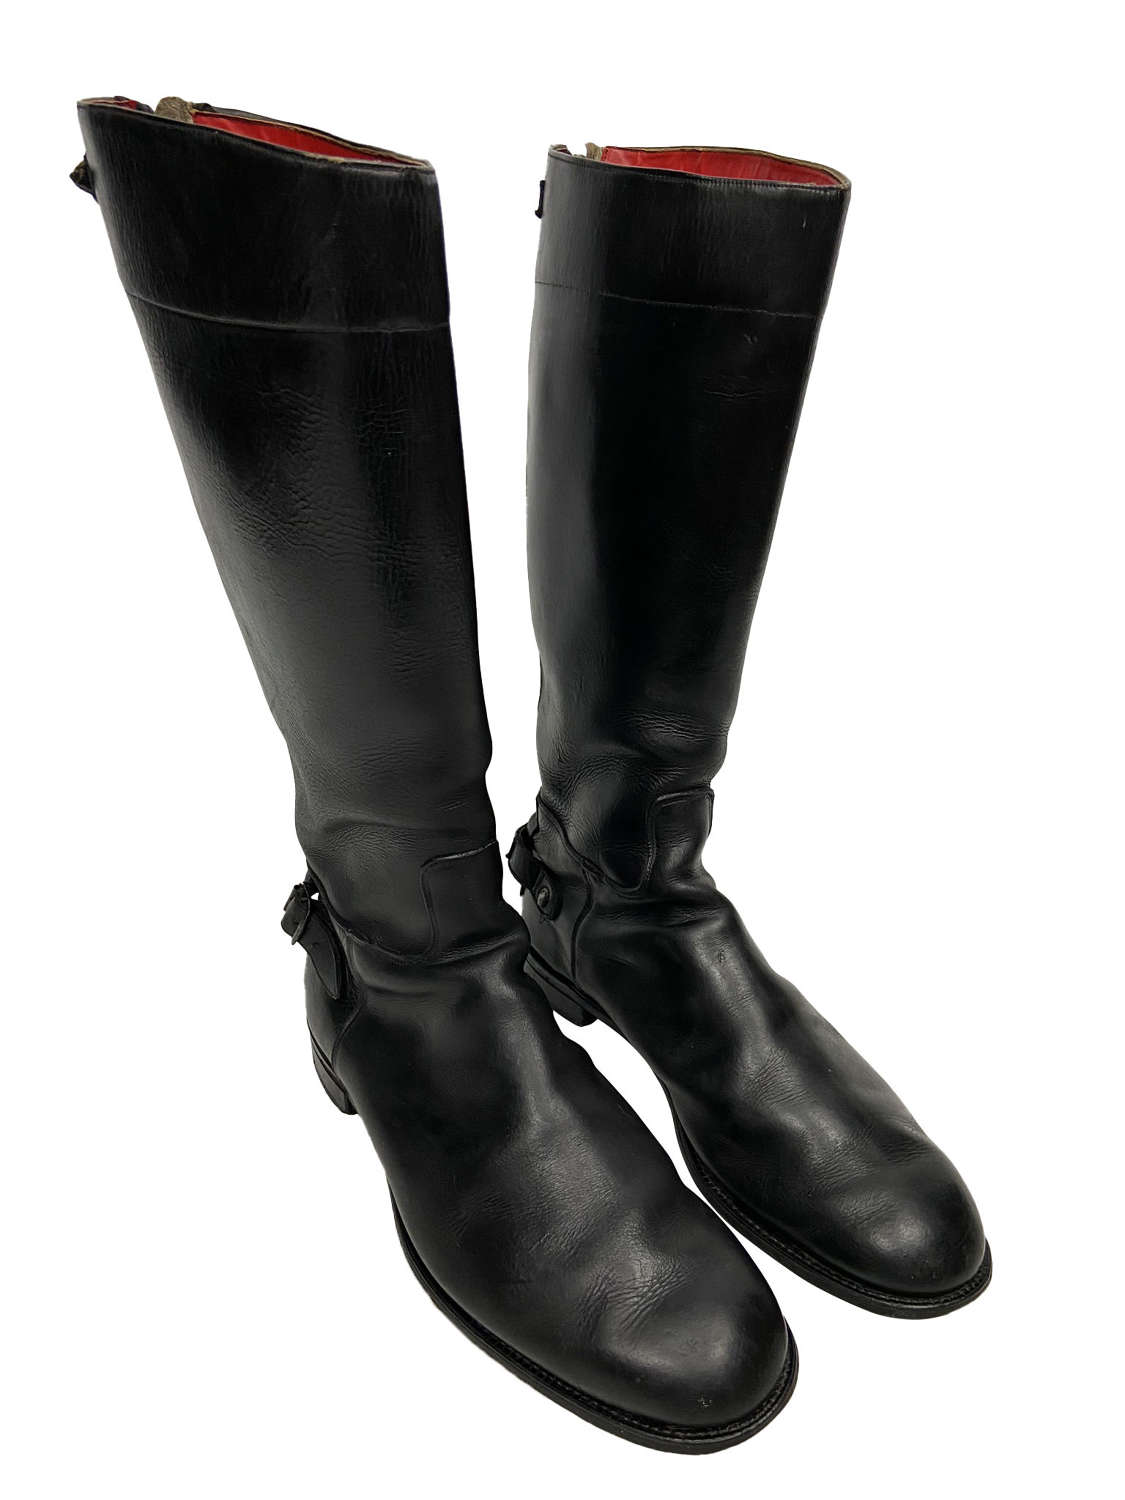 Original 1950s Lewis Leathers Aviakit Motorcycle Boots - Size 11